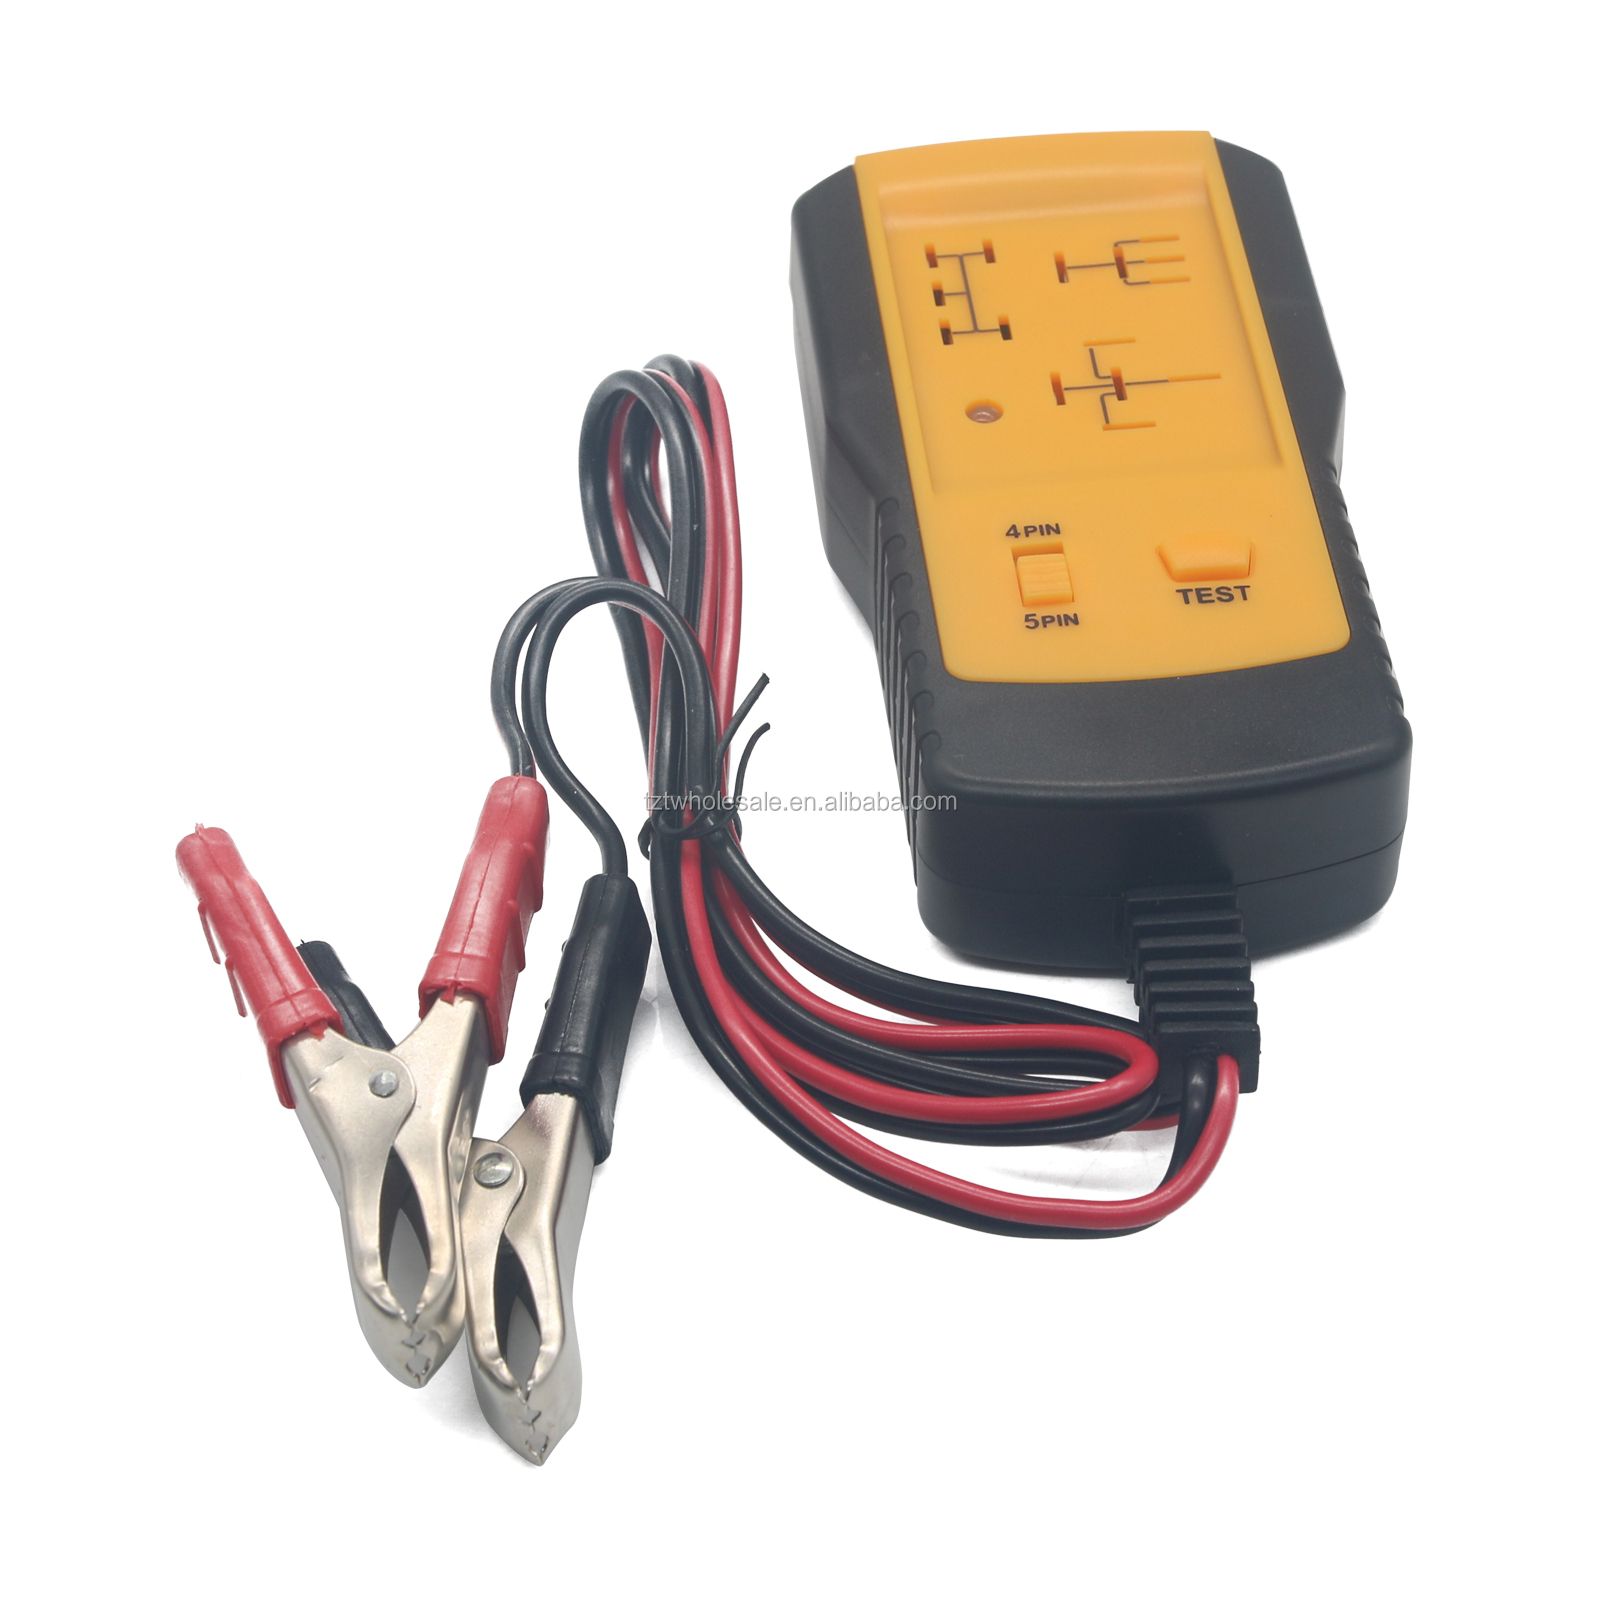 AE100 Electronic Automotive Relay Tester 12V Car Auto Battery Checker Universal